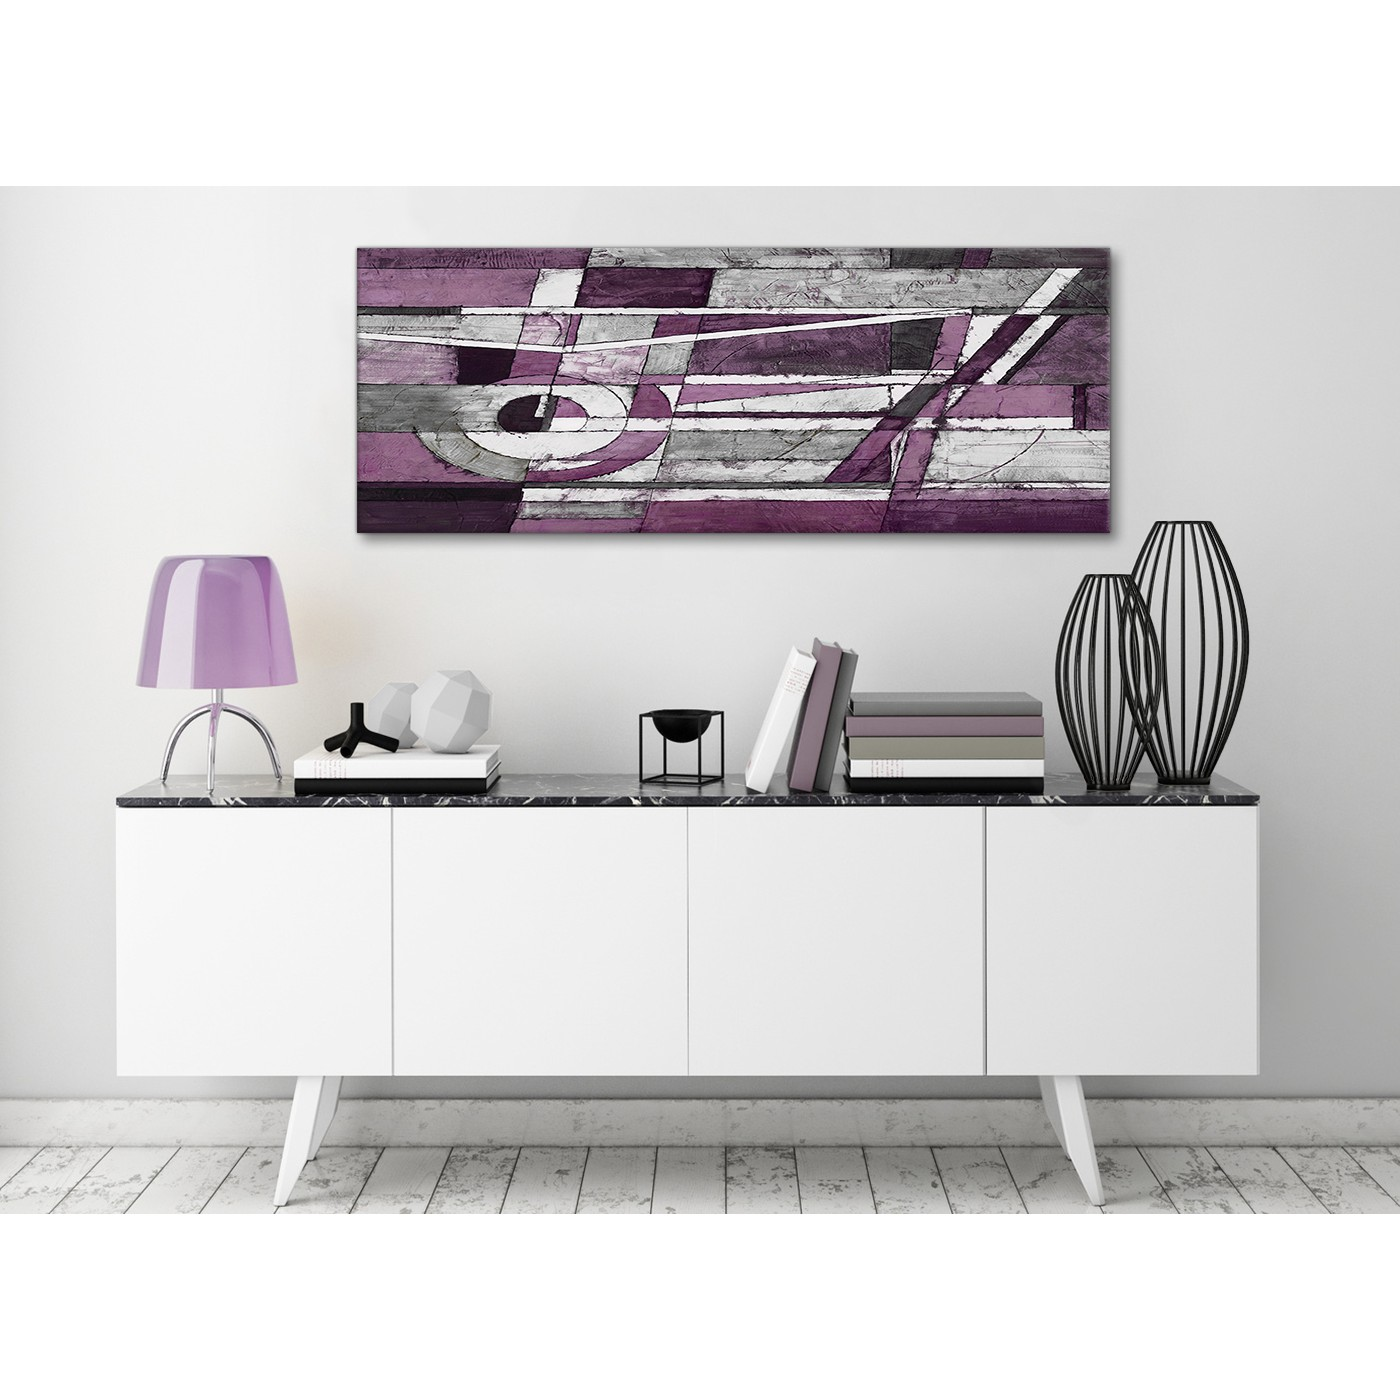 Display Gallery Item 1; Aubergine Grey White Painting Living Room Canvas  Pictures Accessories   Abstract 1406   120cm Print Display Gallery Item 2  ...